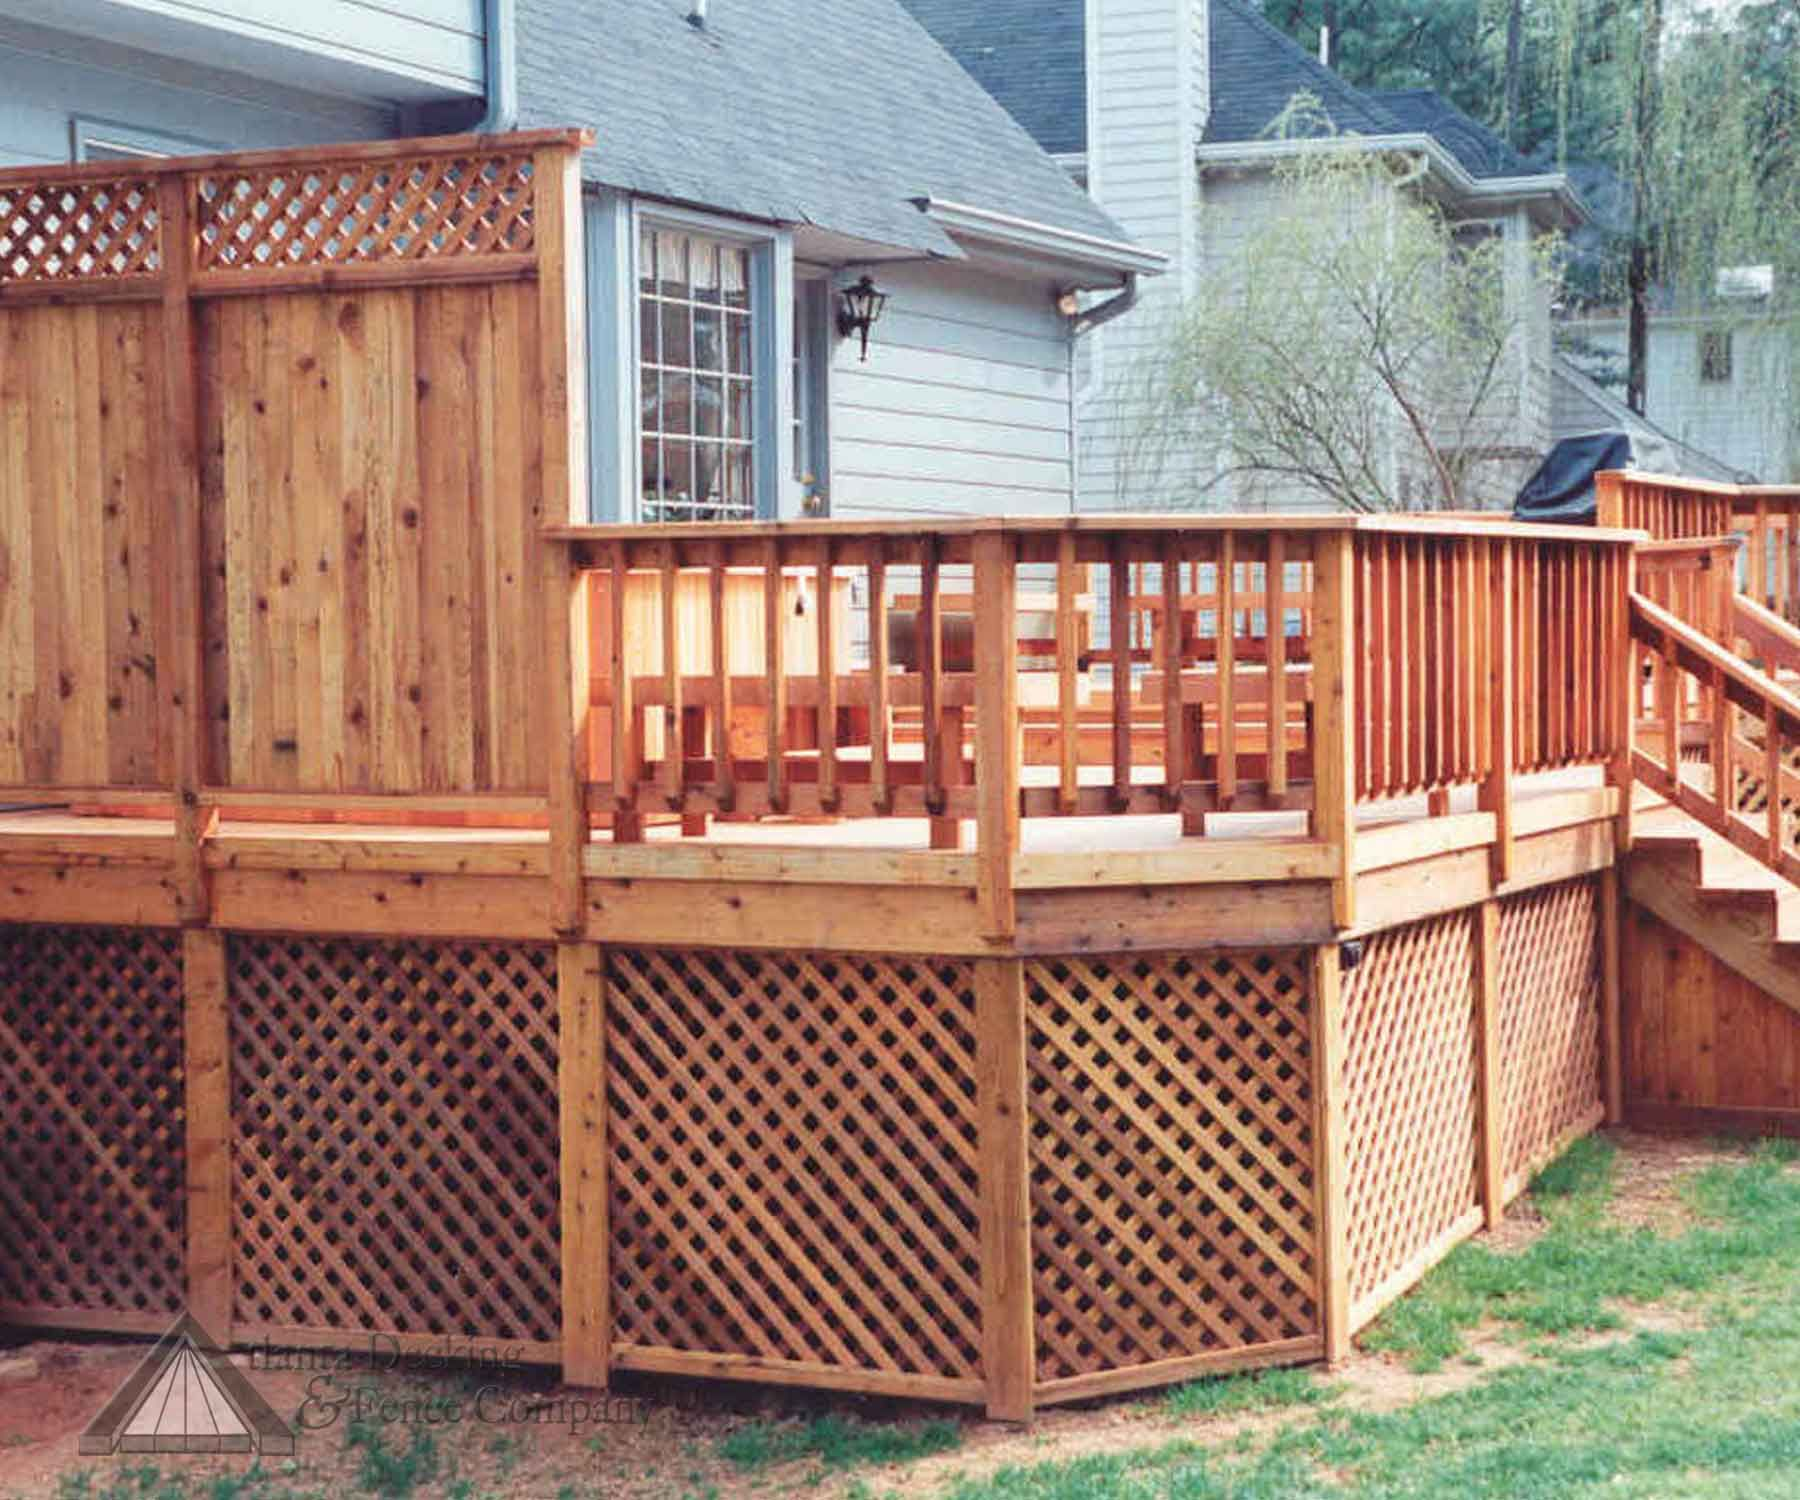 Outdoor Privacy Screens For Decks - Privacy Screen With Lattice